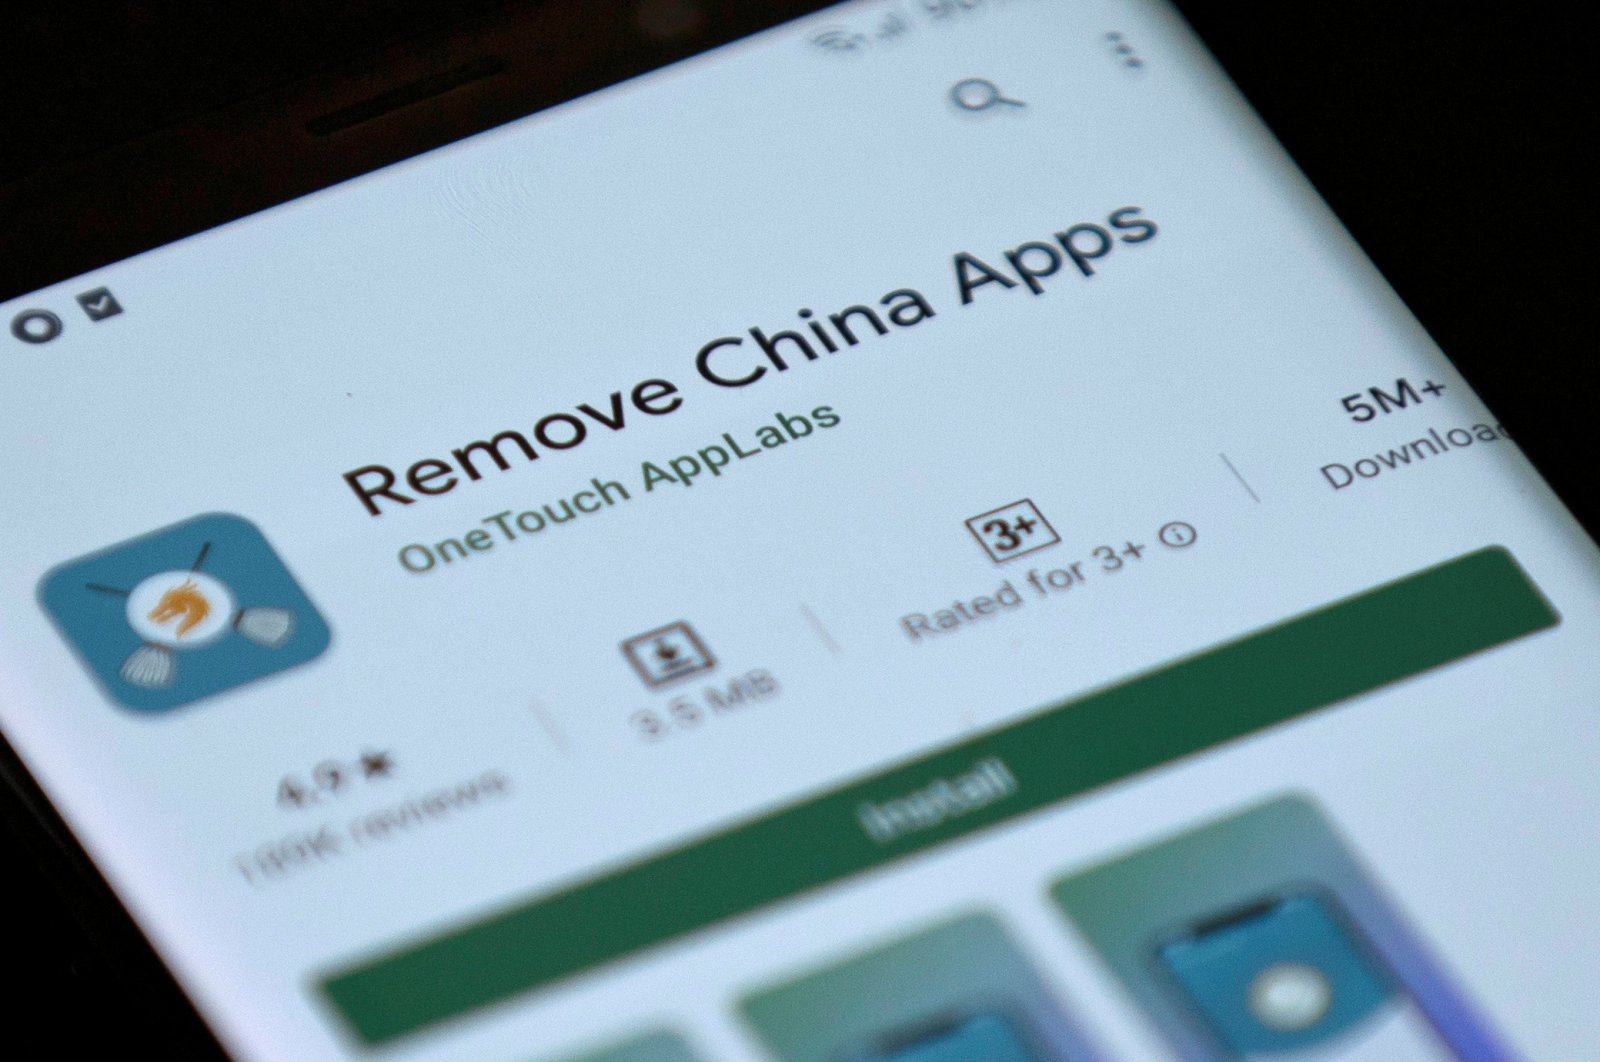 Remove China Apps is seen in the Google Play store on a mobile phone in this shot taken on June 2, 2020. (Reuters Photo)